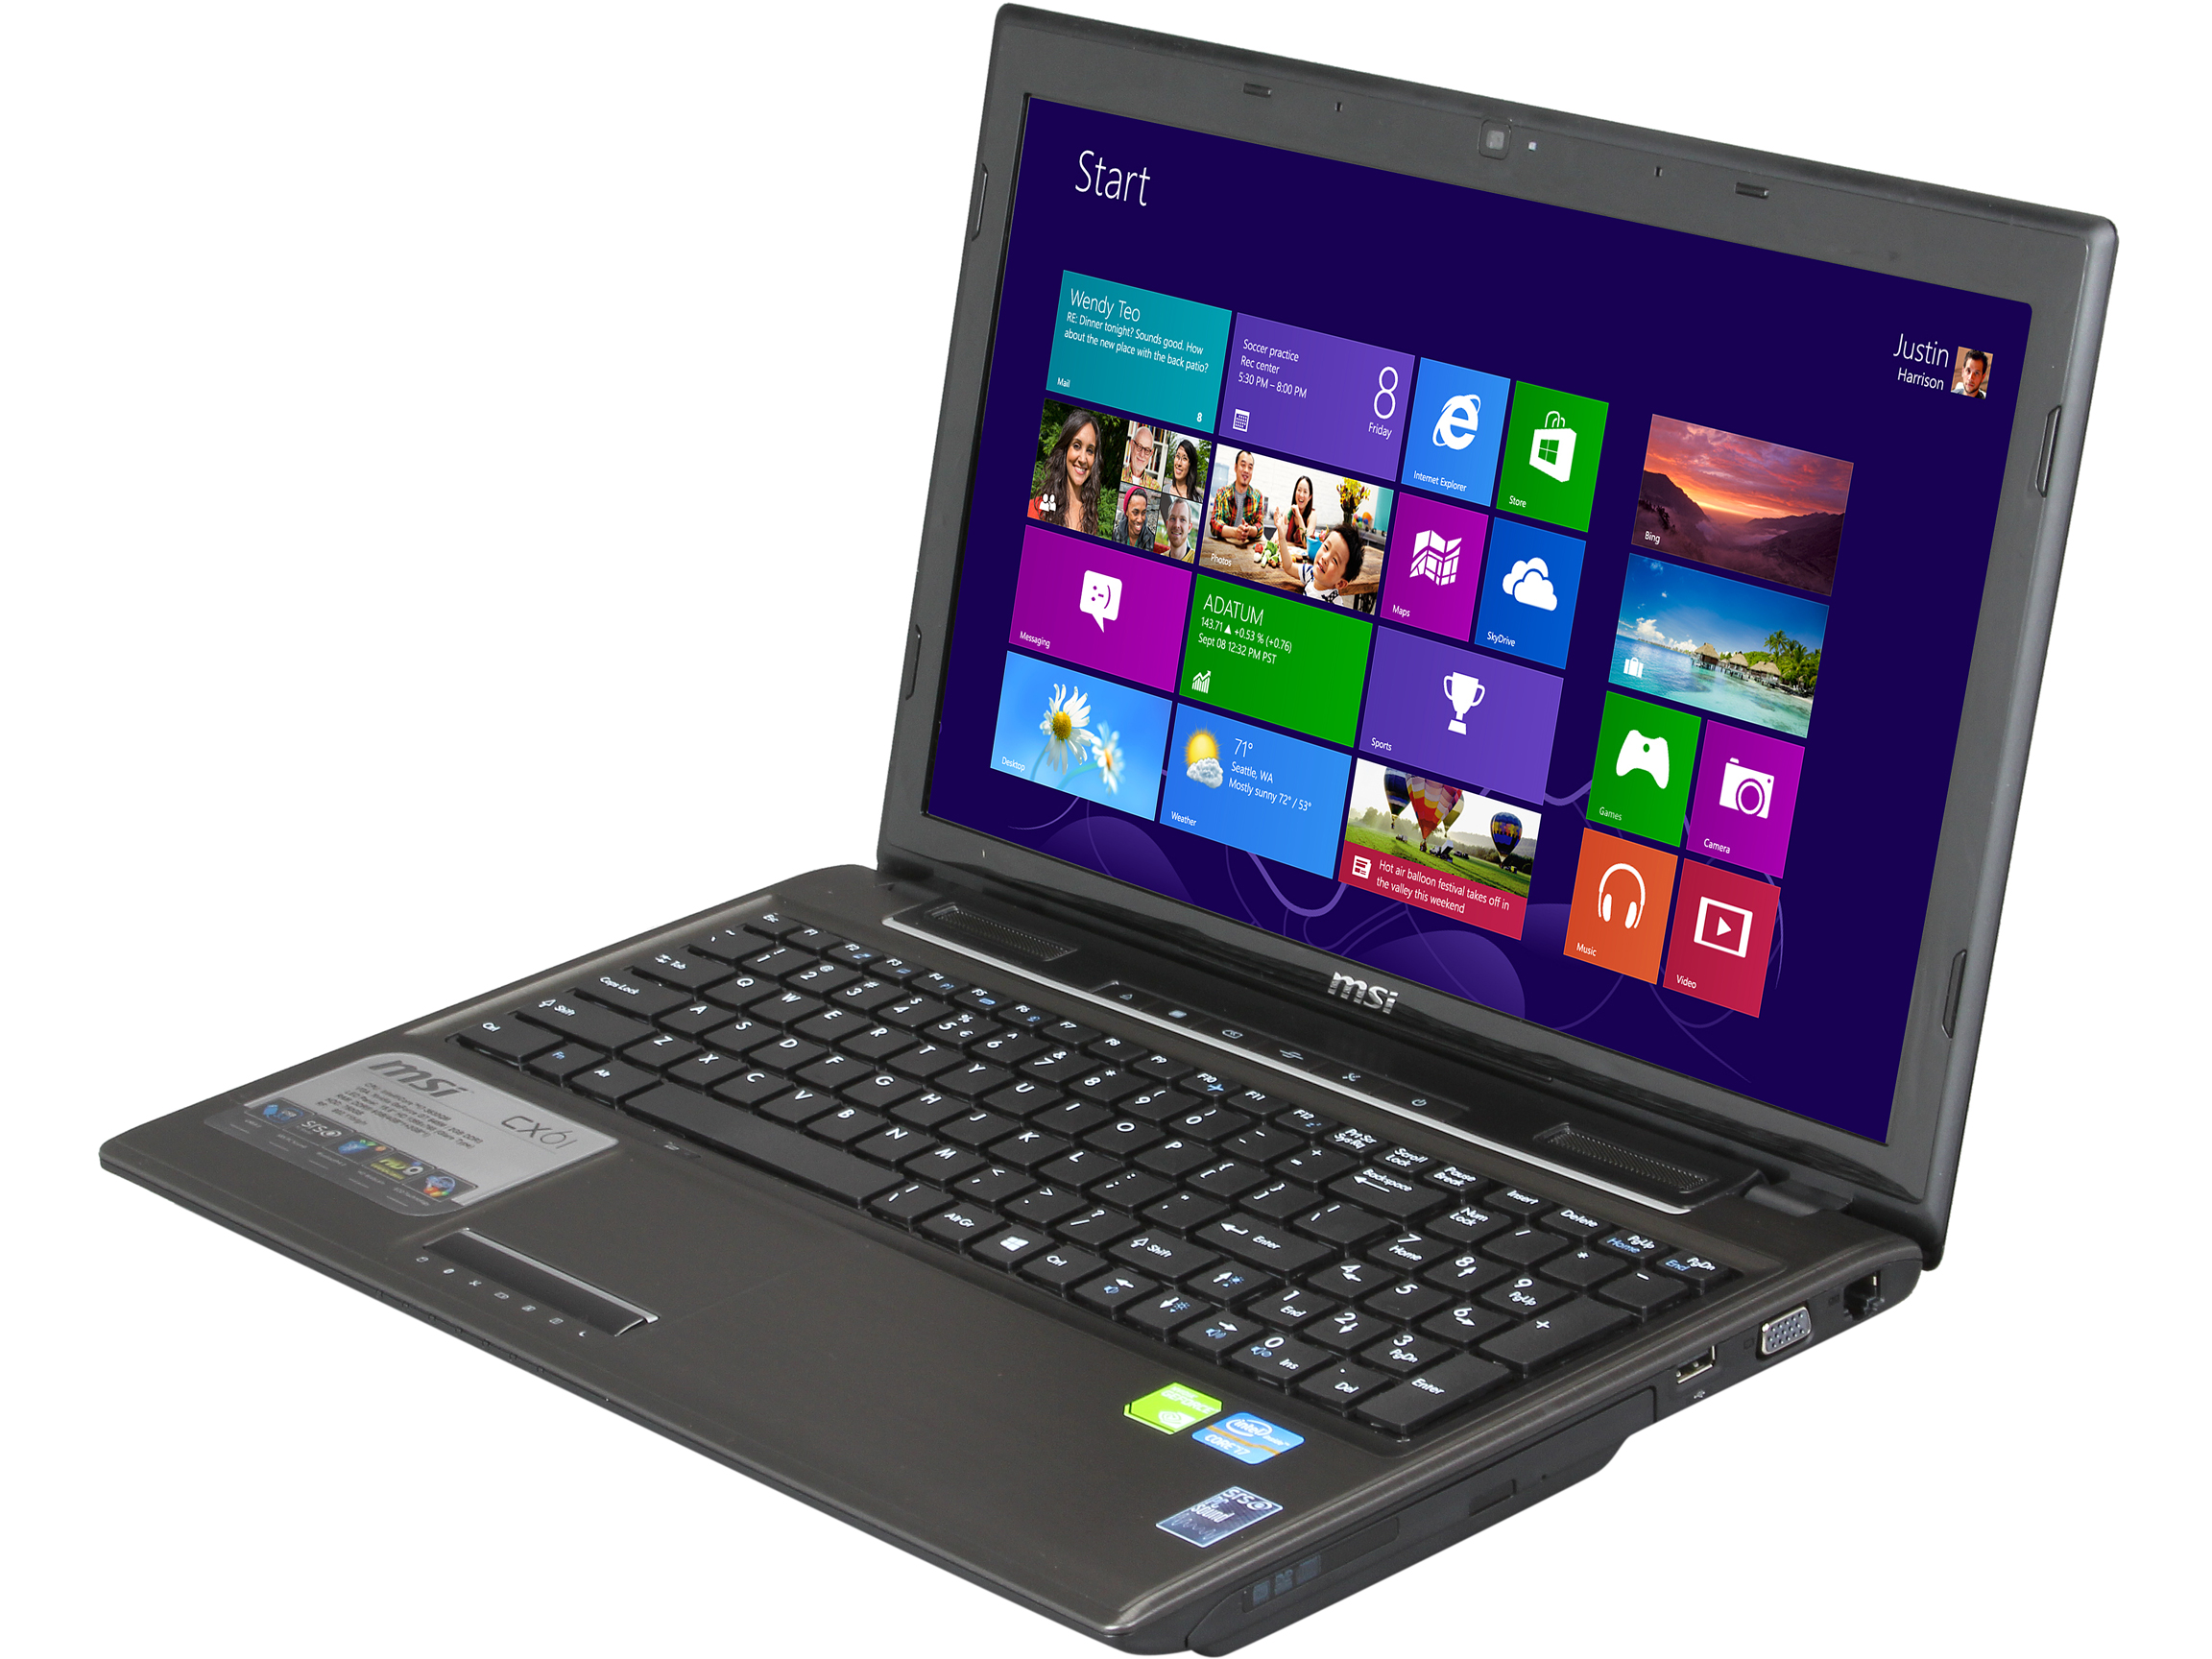 "MSI CX61 0NF-686MX Notebook Intel Core i7 3630QM (2.40GHz) 6GB Memory 750GB HDD NVIDIA GeForce GT 645M 15.6"" Windows 8"